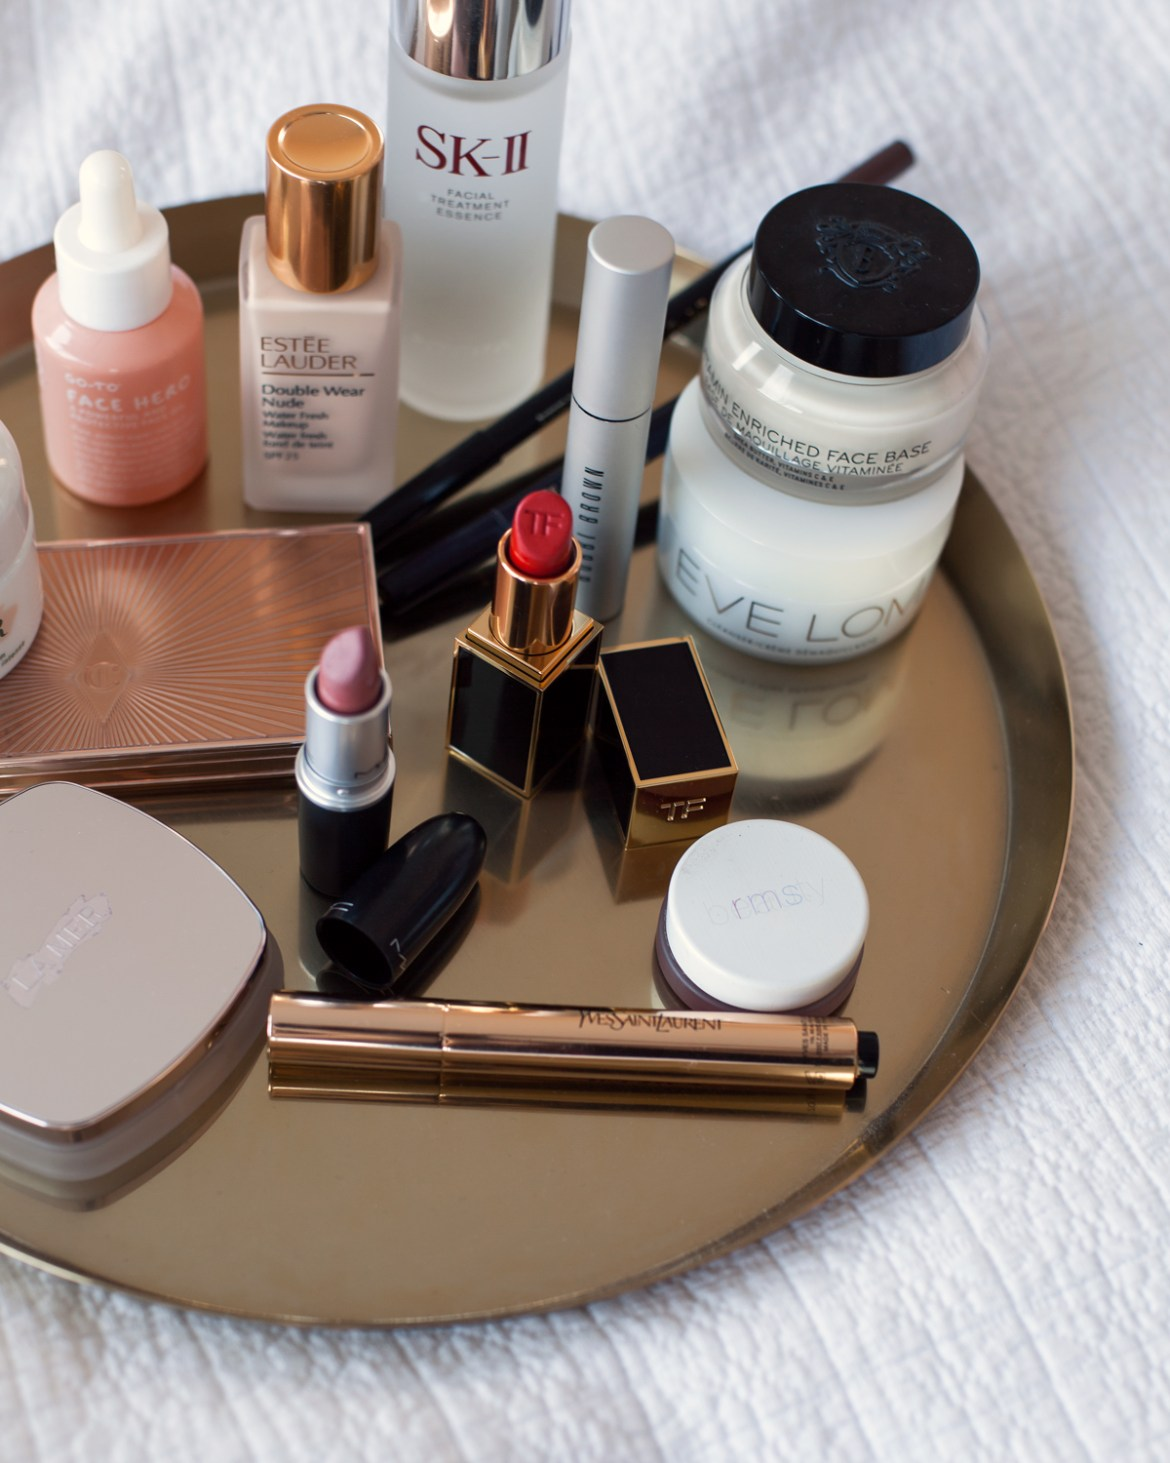 beauty blog Inspiring Wit best beauty products La Mer Tom Ford Eve Lom YSL go-to skincare Estee Lauder Bobbi Brown SK-II